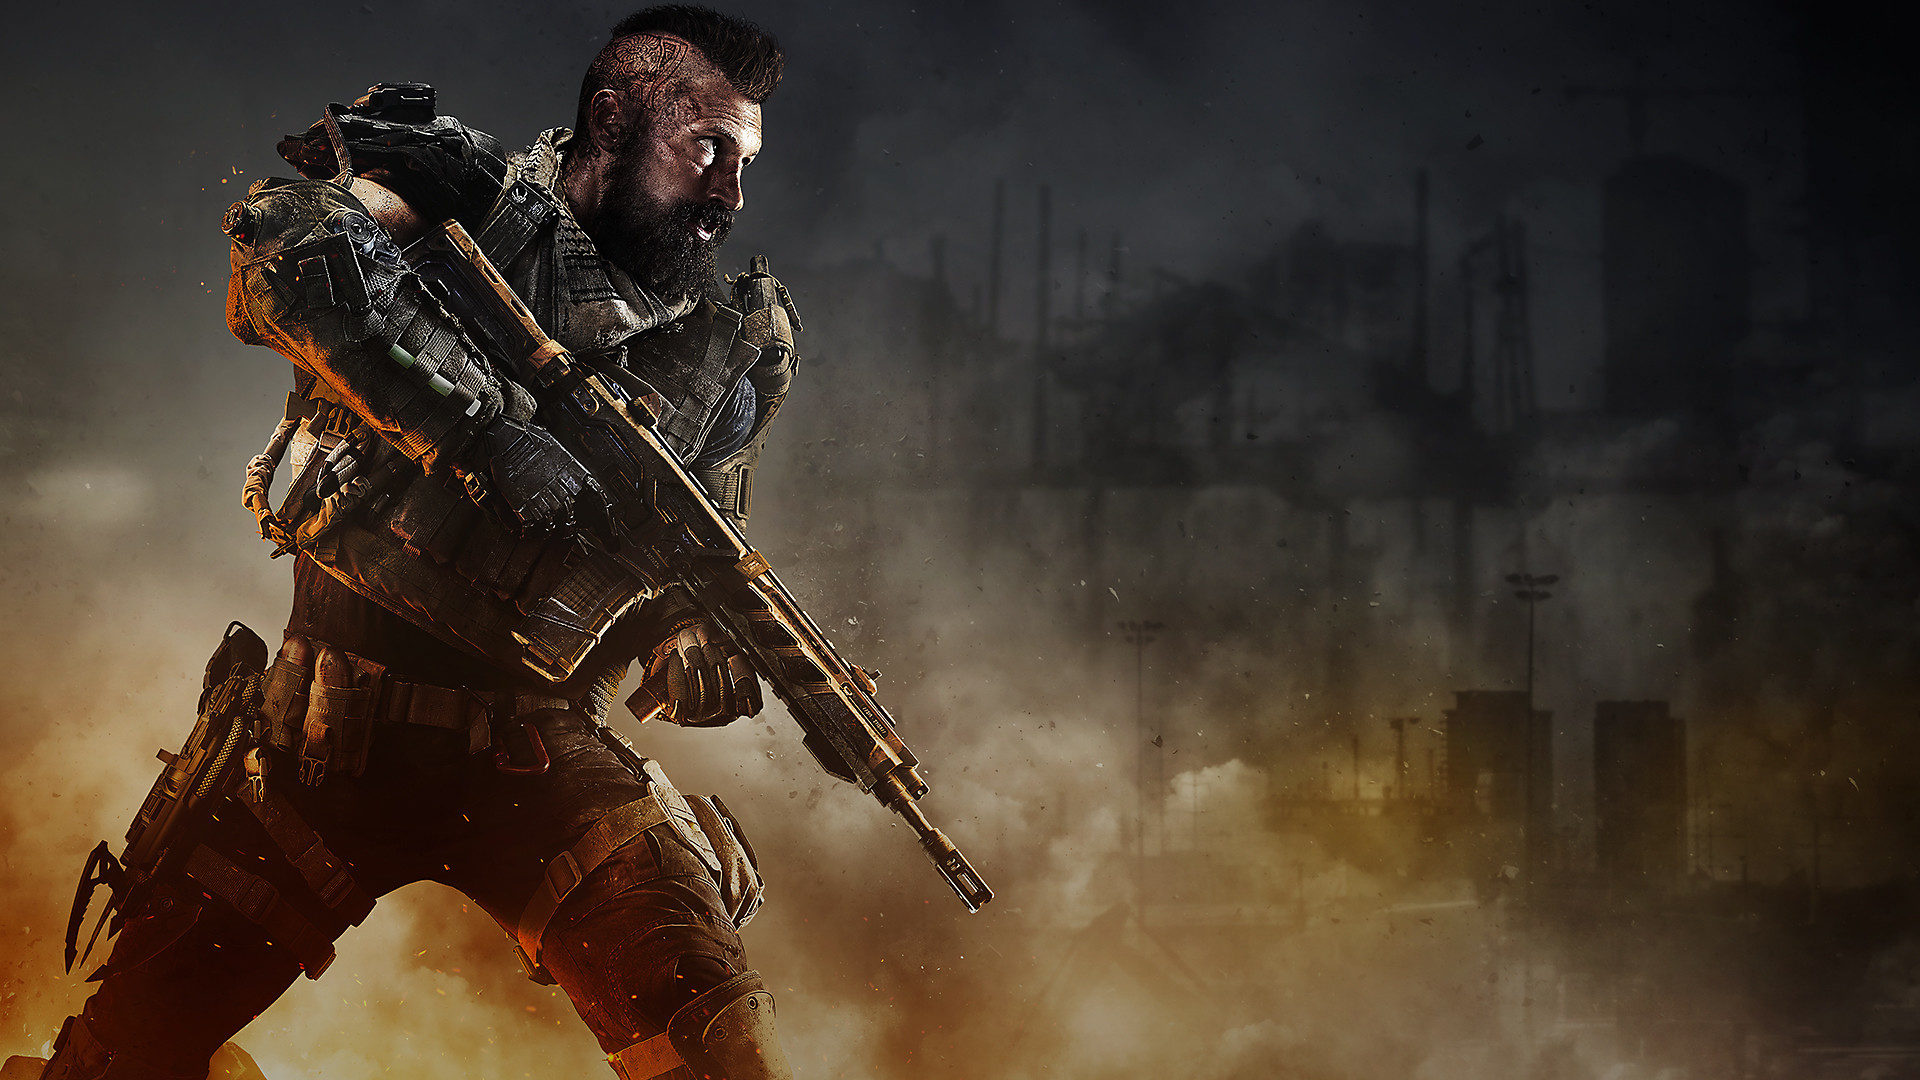 2020's Call Of Duty reportedly switches studio mid-development